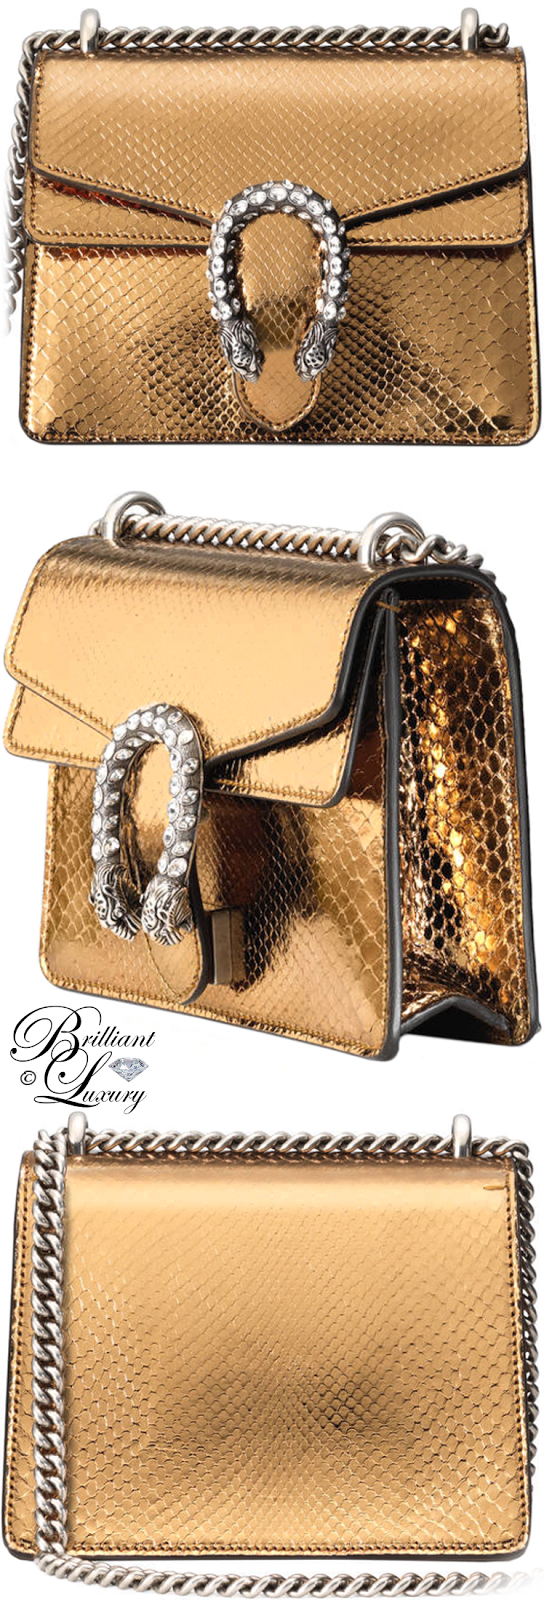 Brilliant Luxury ♦ Gucci Dionysus Python Mini Bag